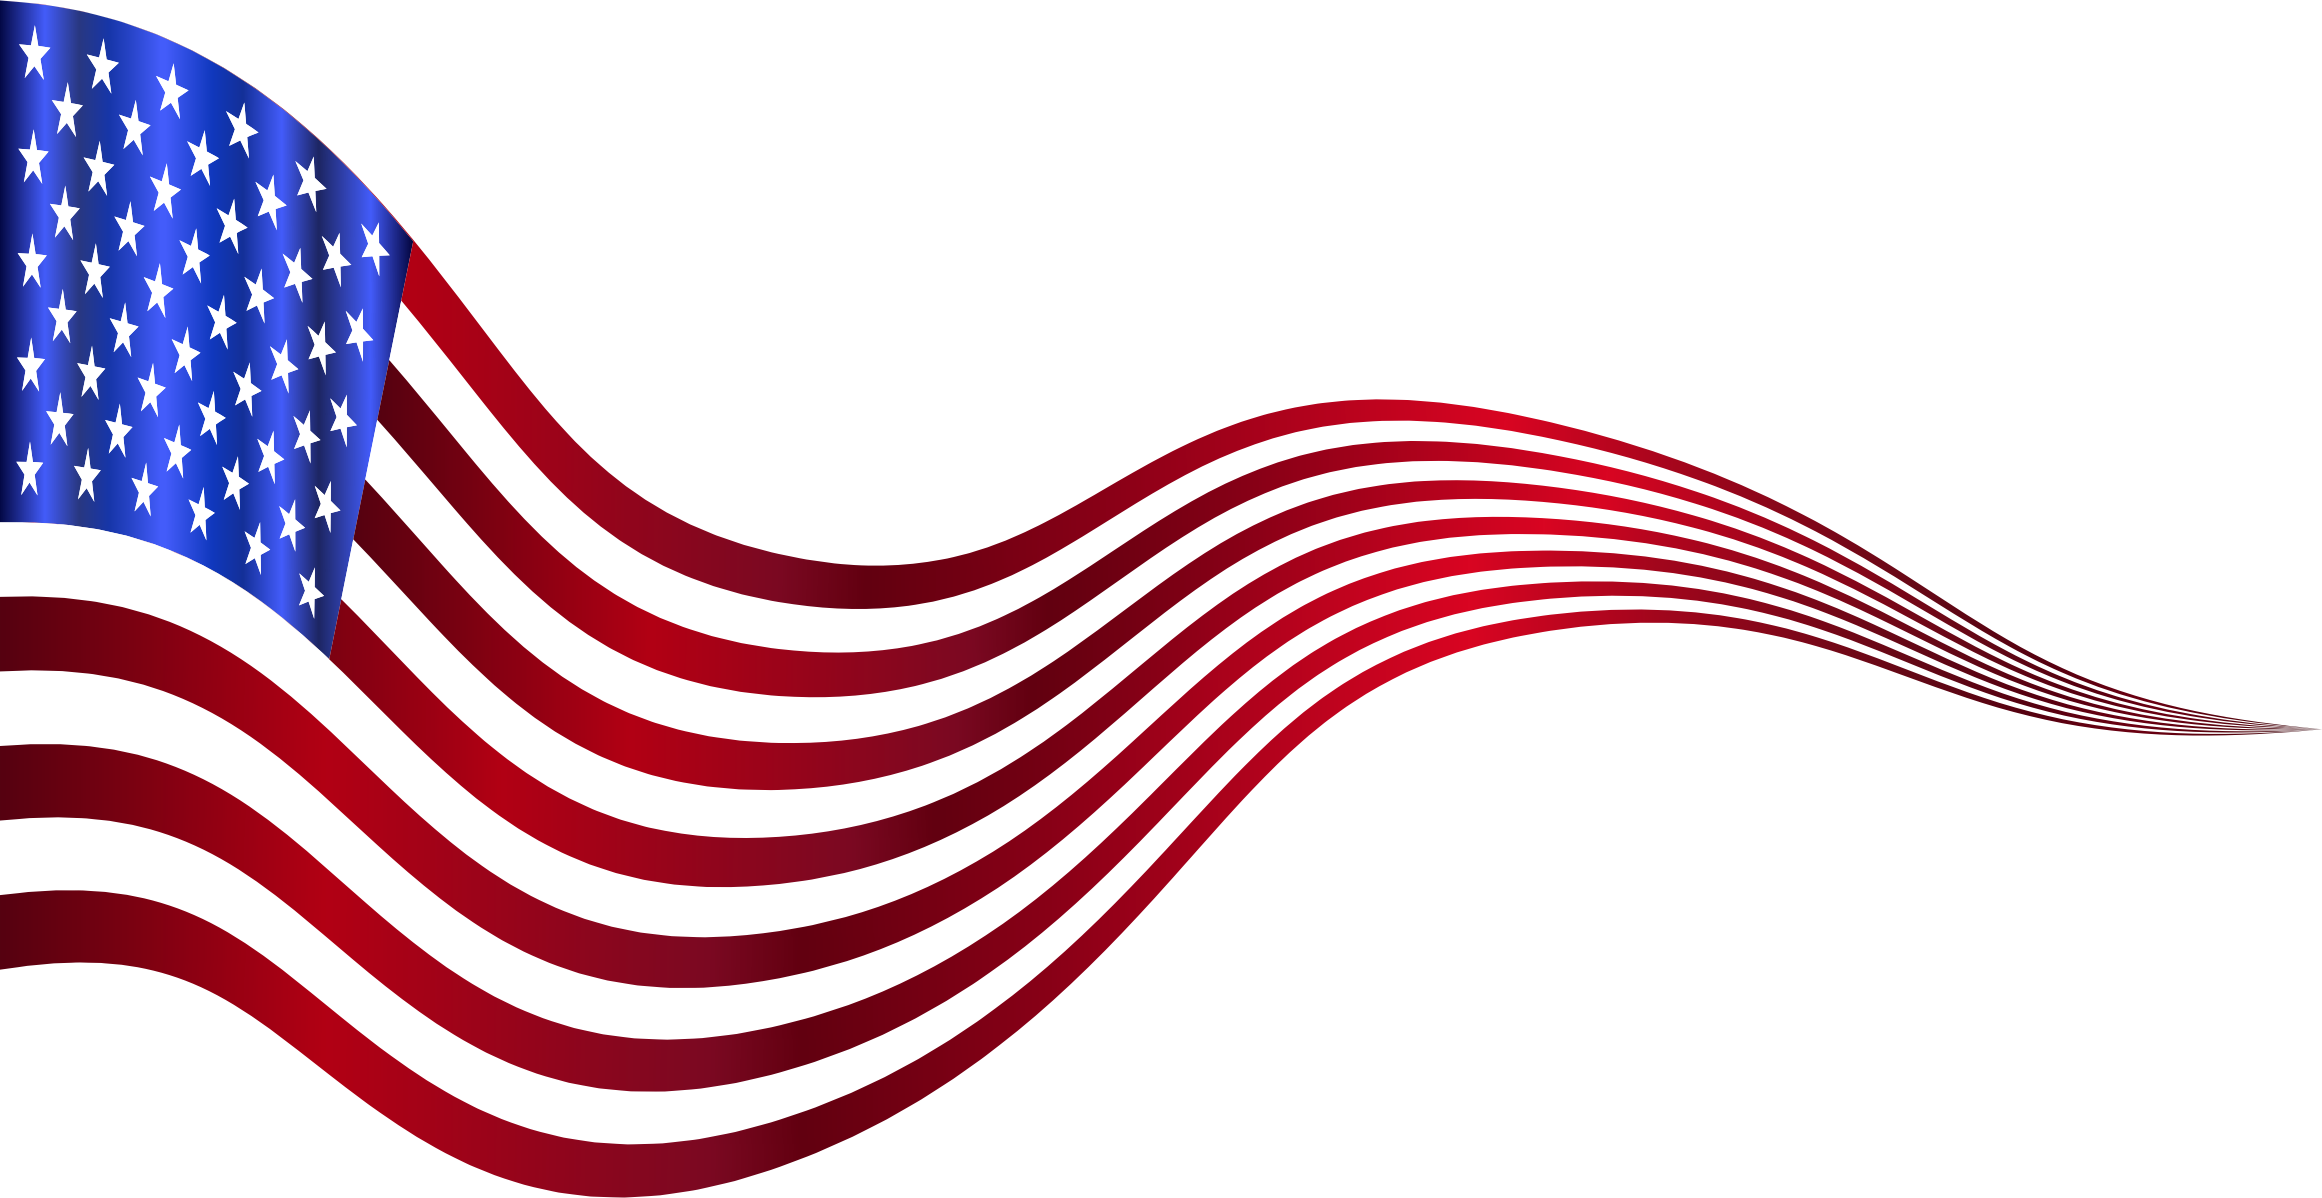 Usa flag clip art png. Clipart wavy banner variation